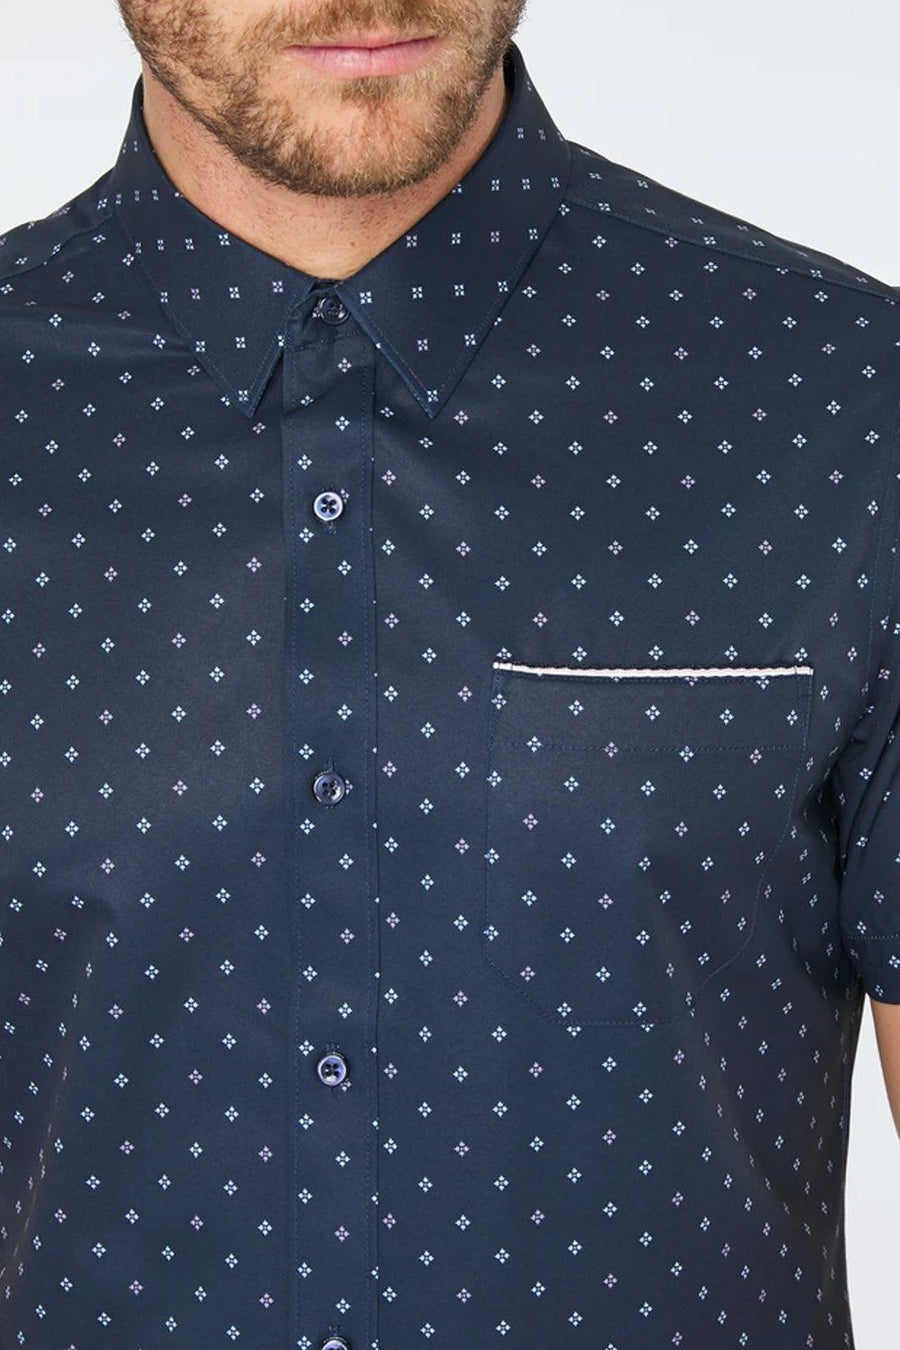 Highway Star 4-Stretch Polo - Navy - Shore